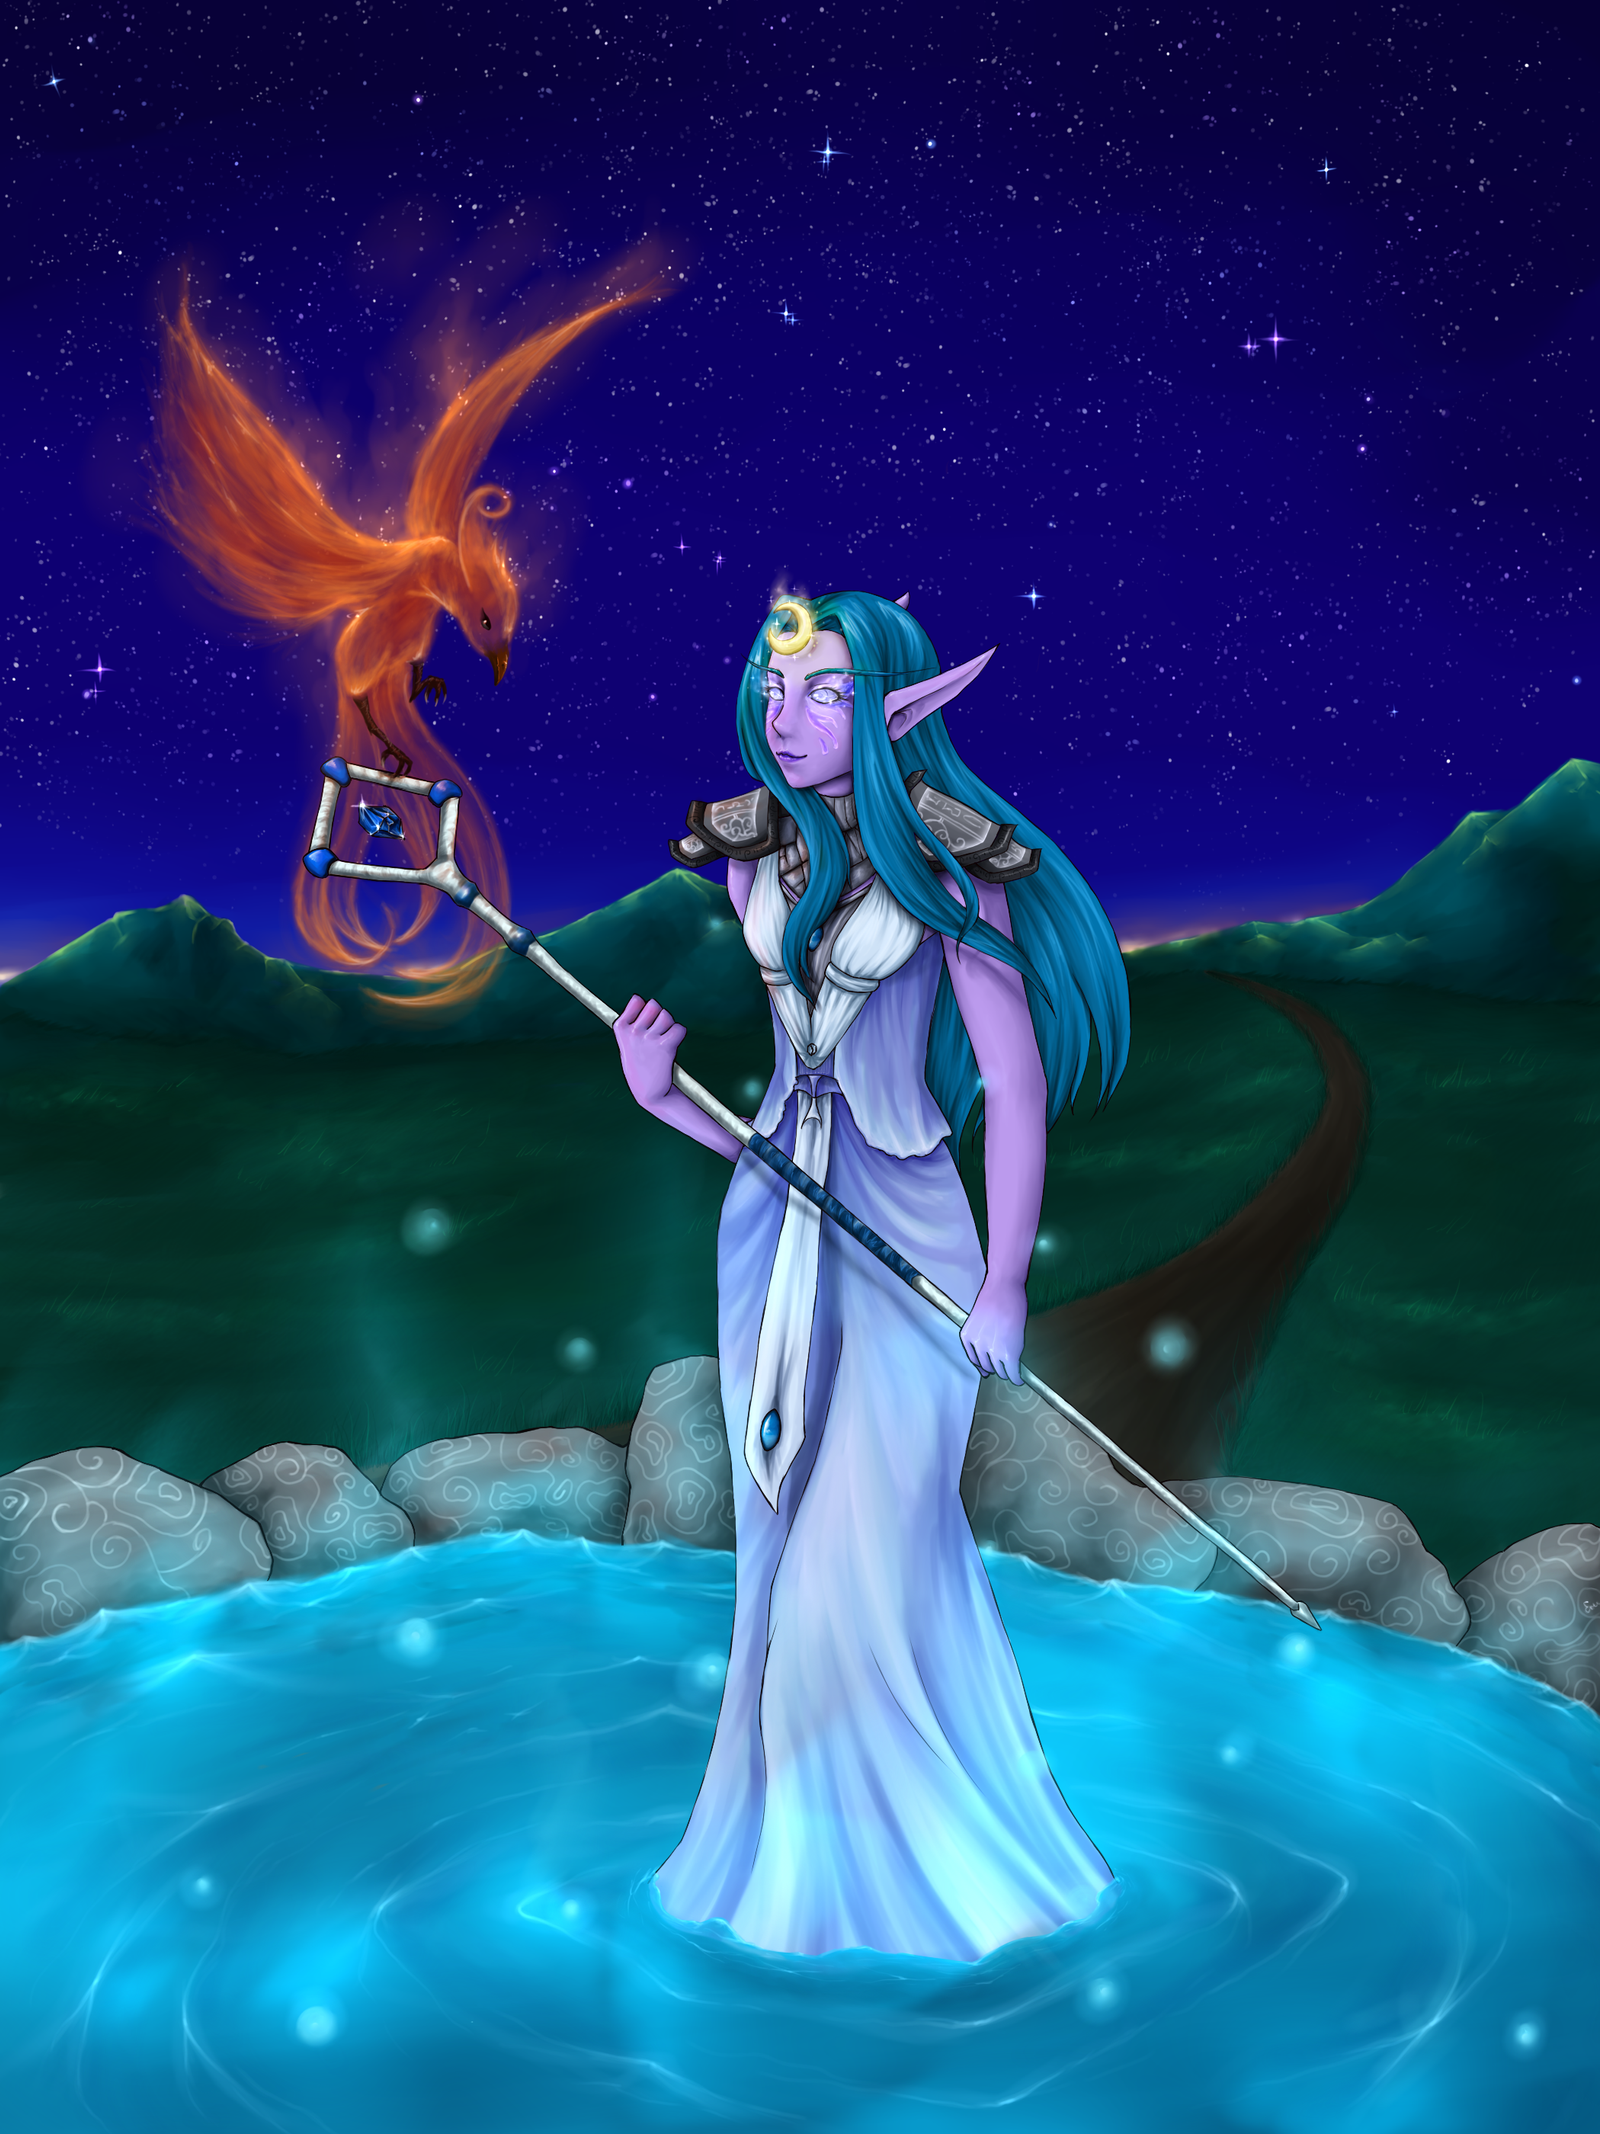 Mia rose night elf nsfw pictures